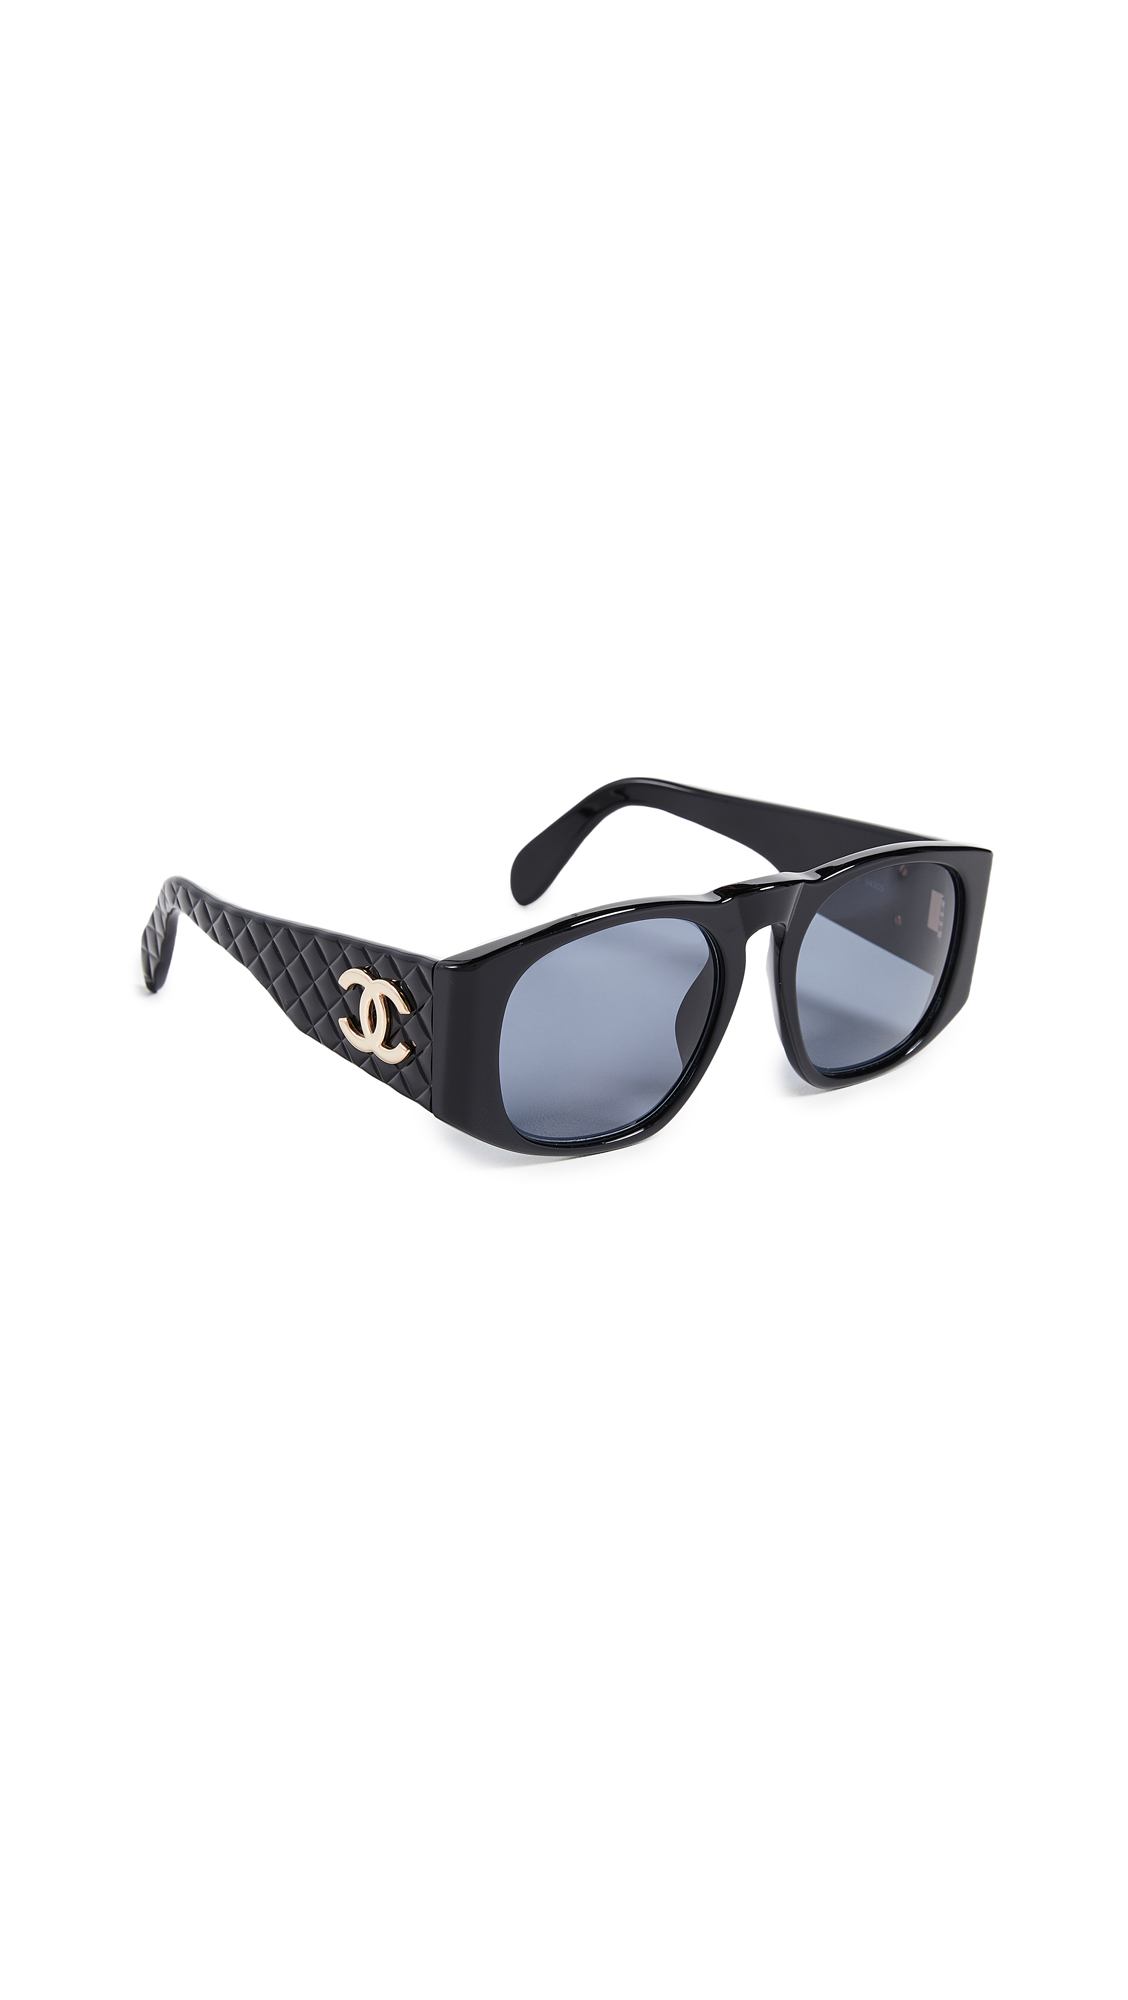 WHAT GOES AROUND COMES AROUND CHANEL QUILTED WIDE FRAME SUNGLASSES